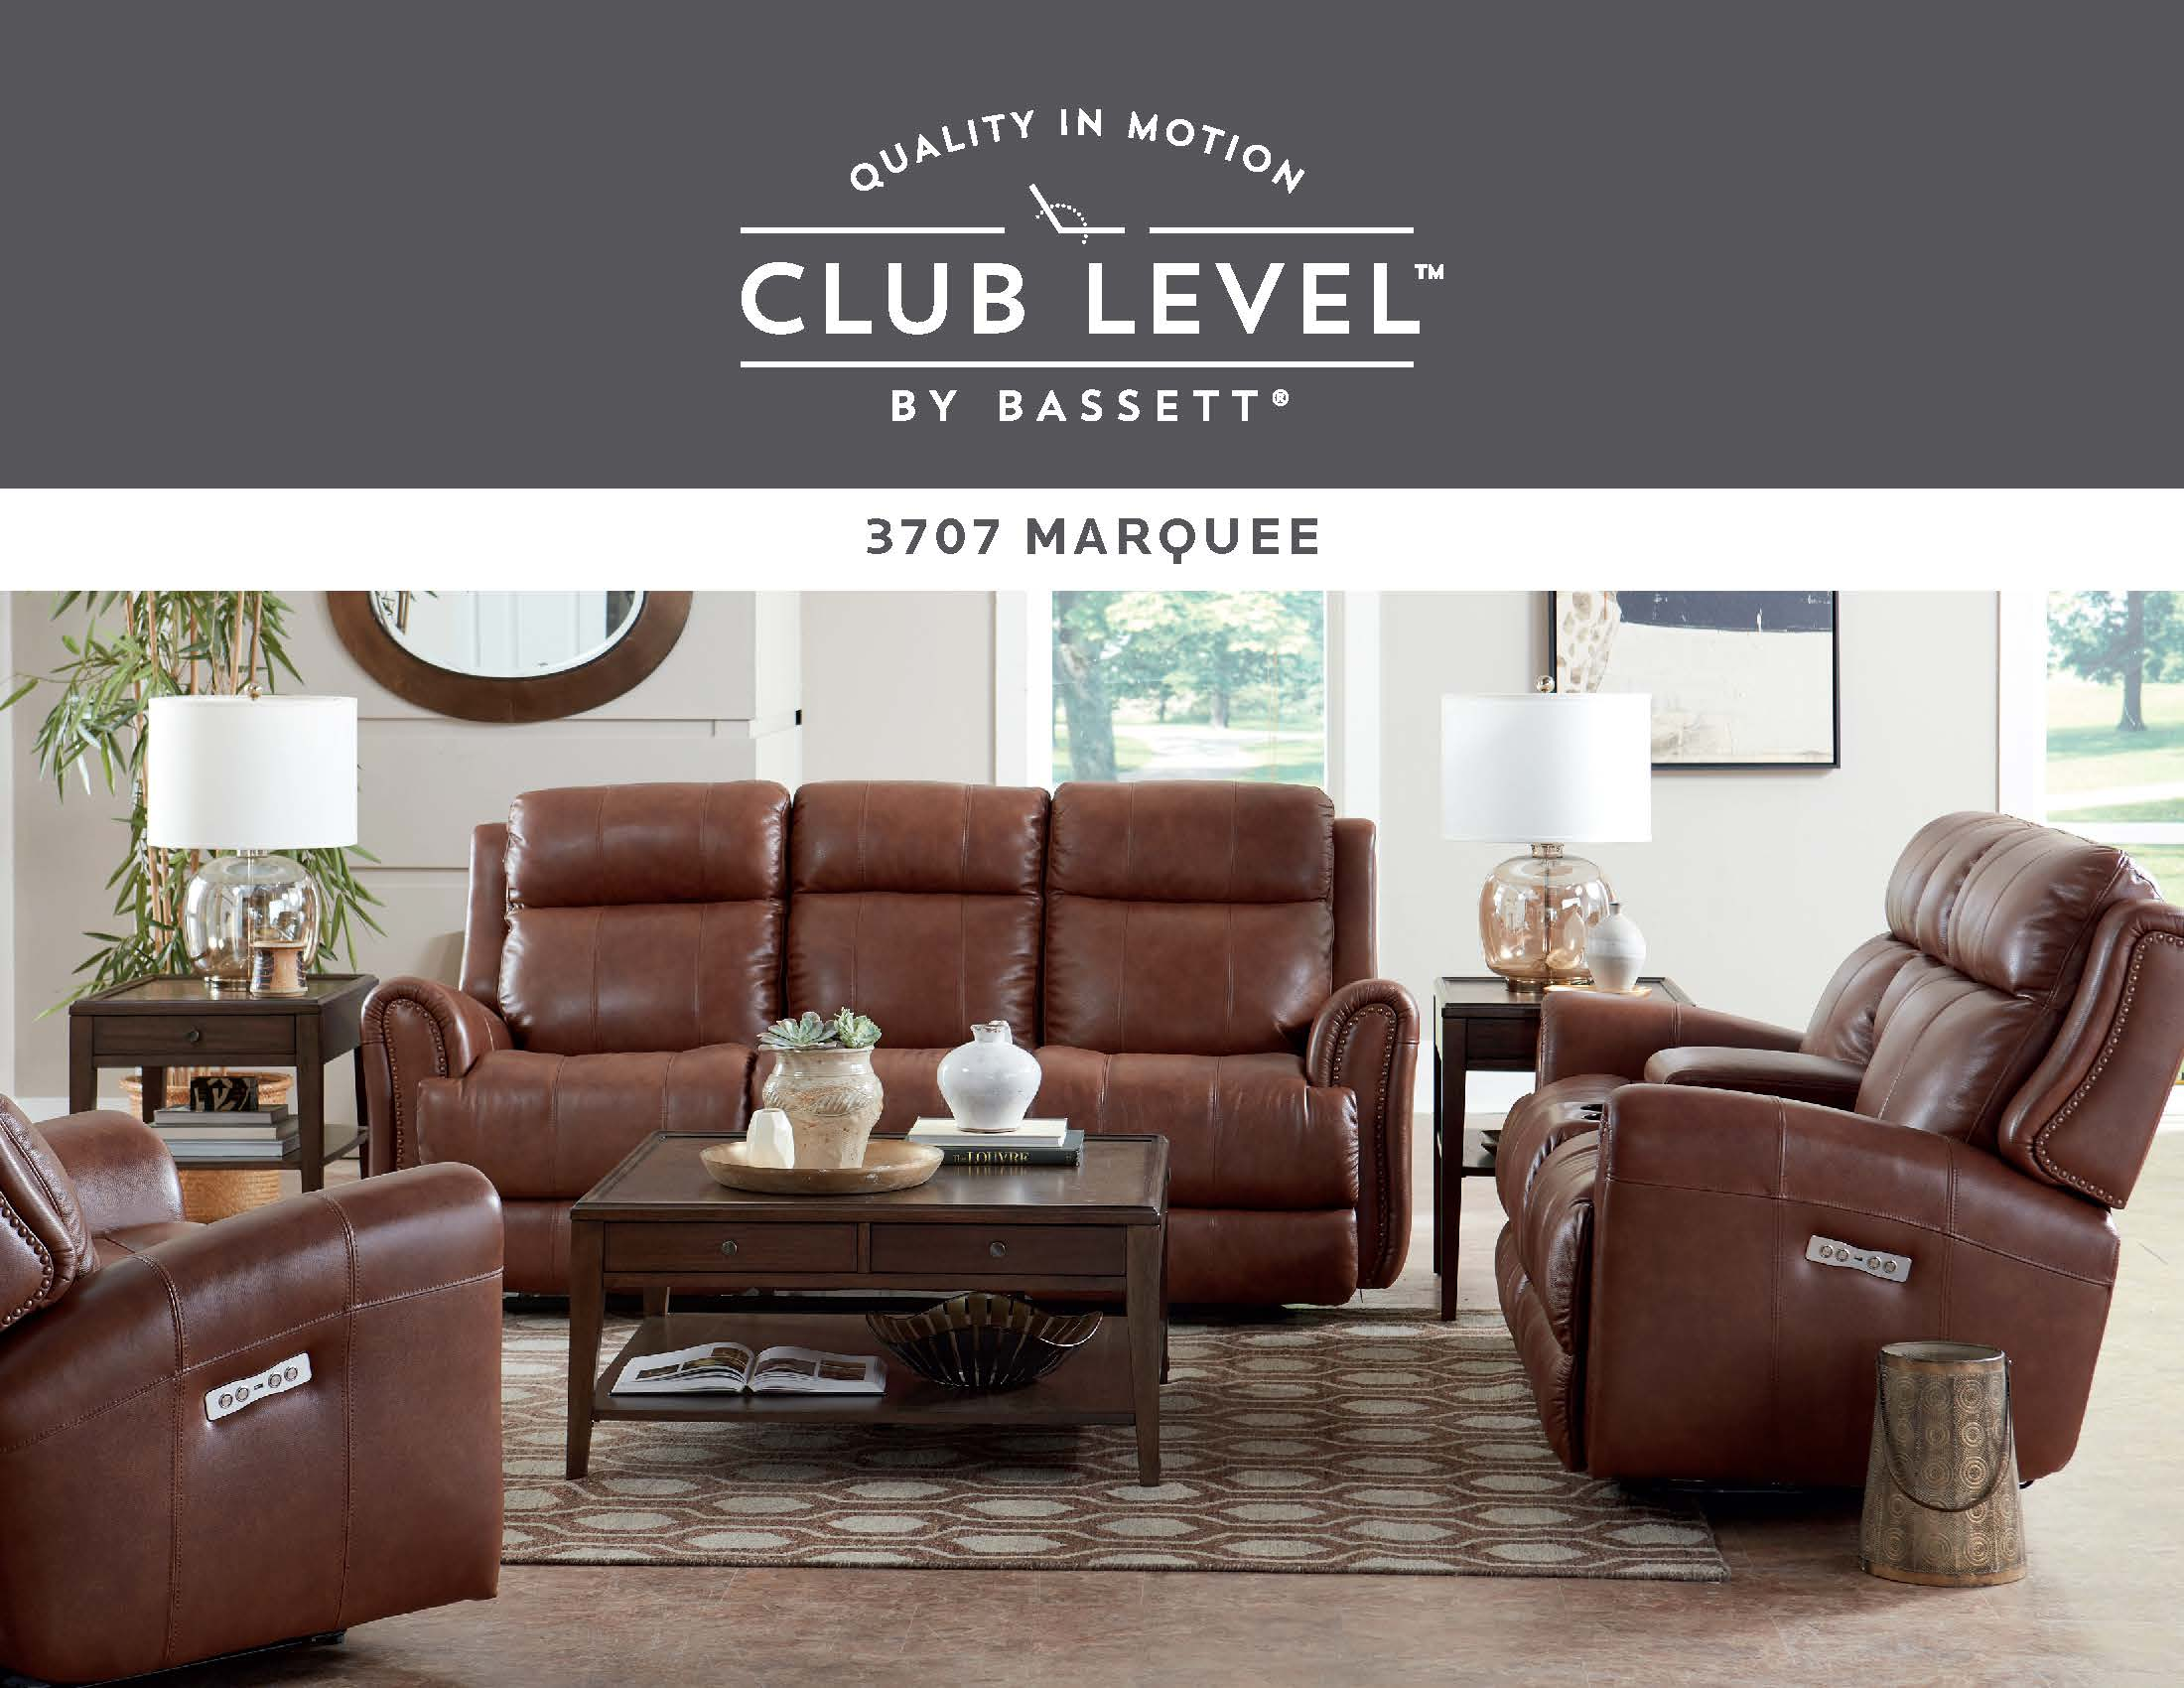 Club Sofas Chairs Amp Sectionals Bassett Club Level